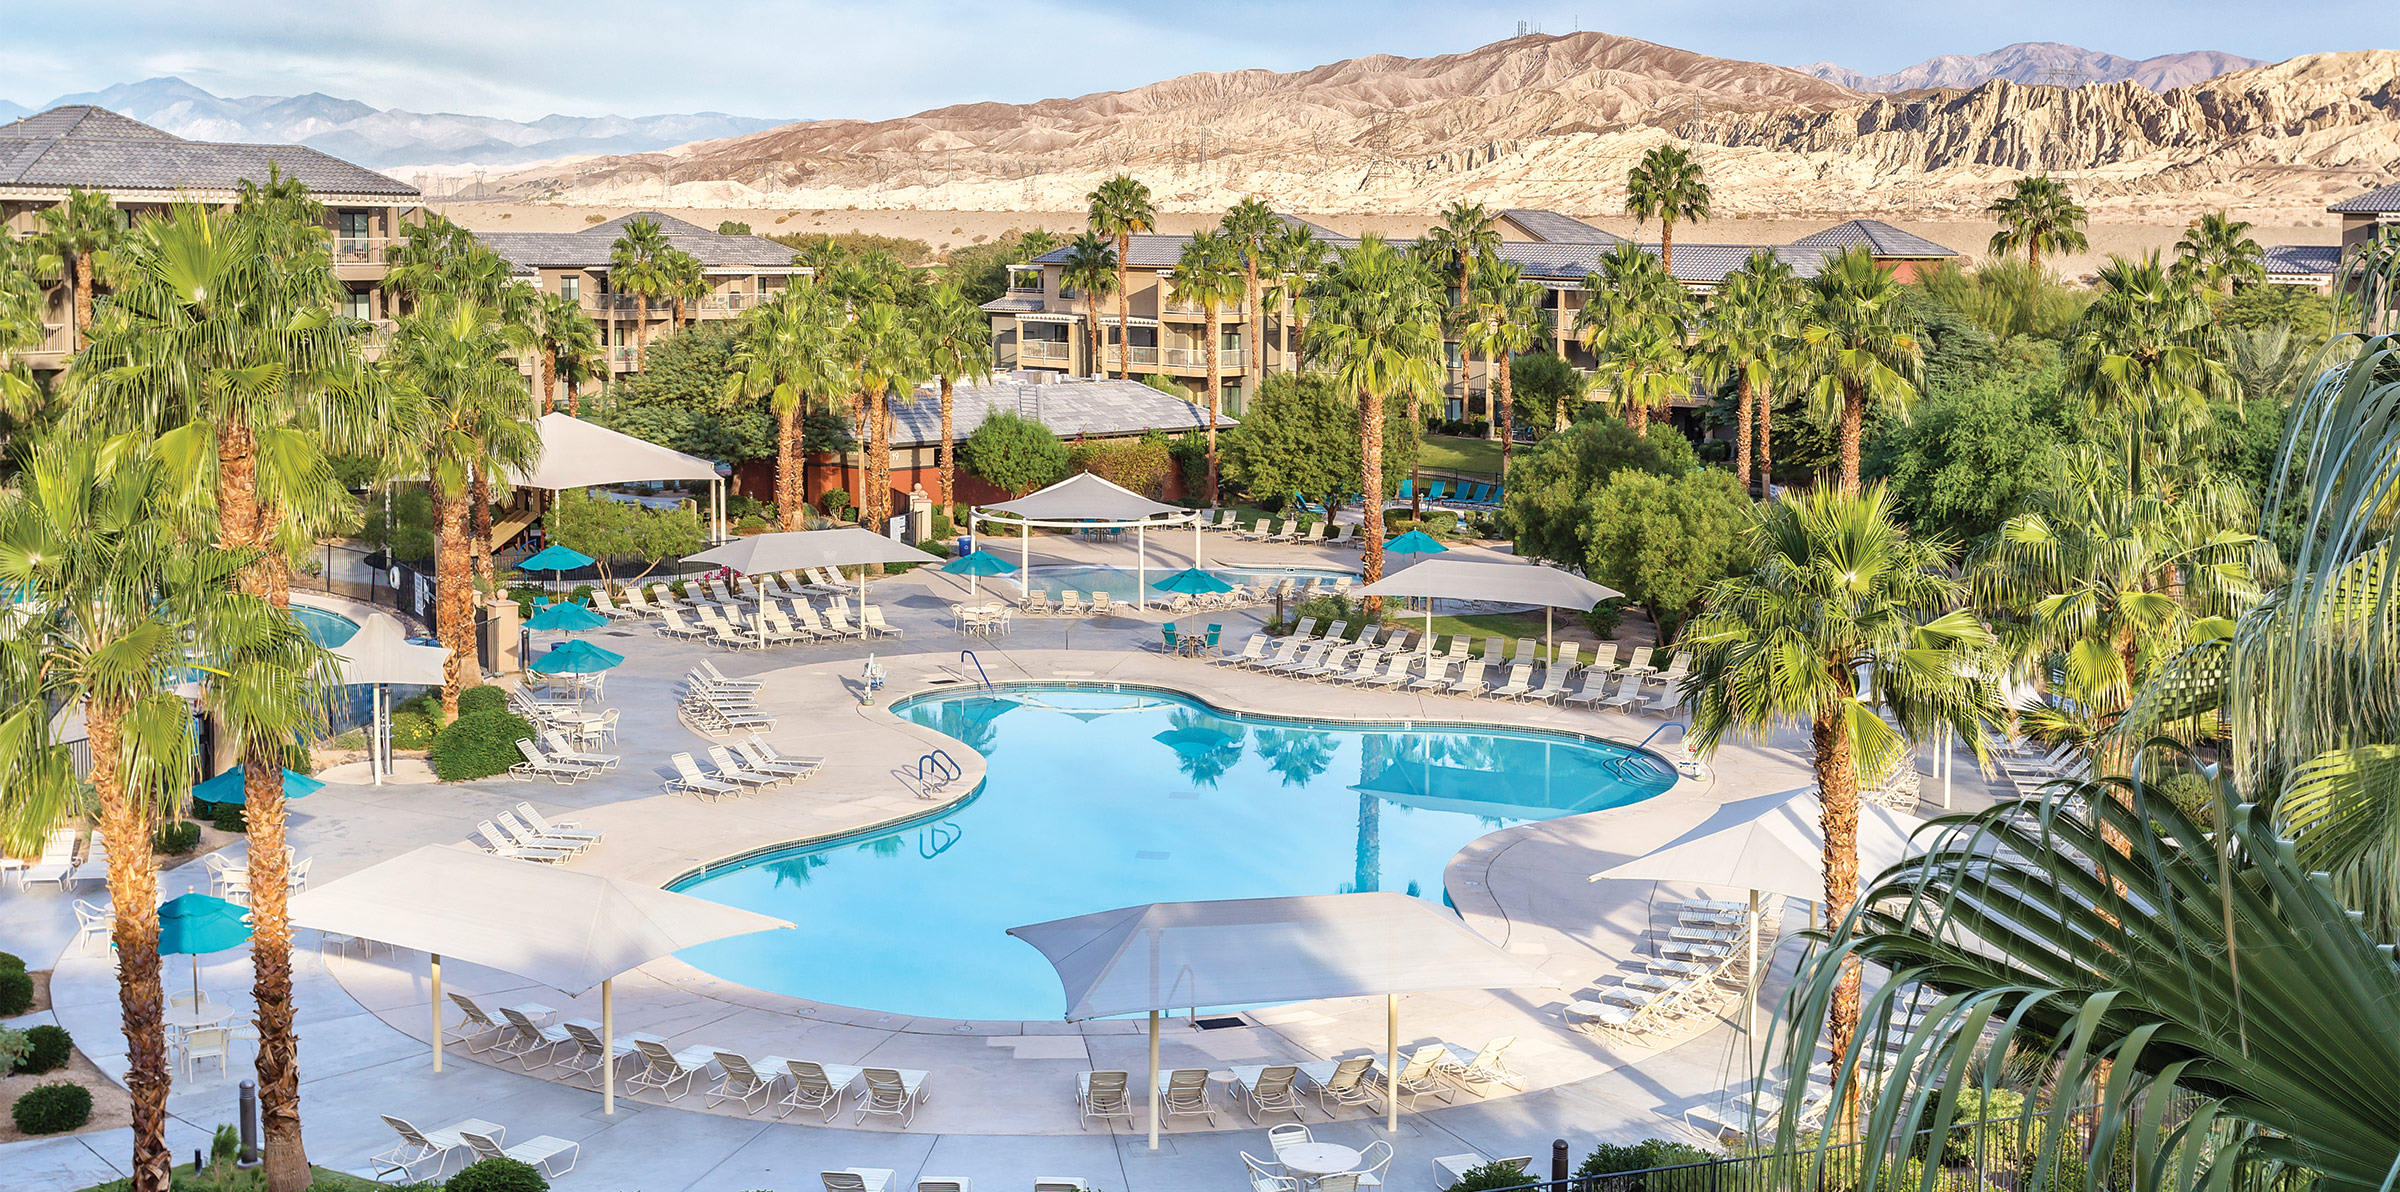 Apartment 1 Bedroom 1 Bath In Indio  CA   Palm Springs  5 miles from COACHELLA photo 20486799